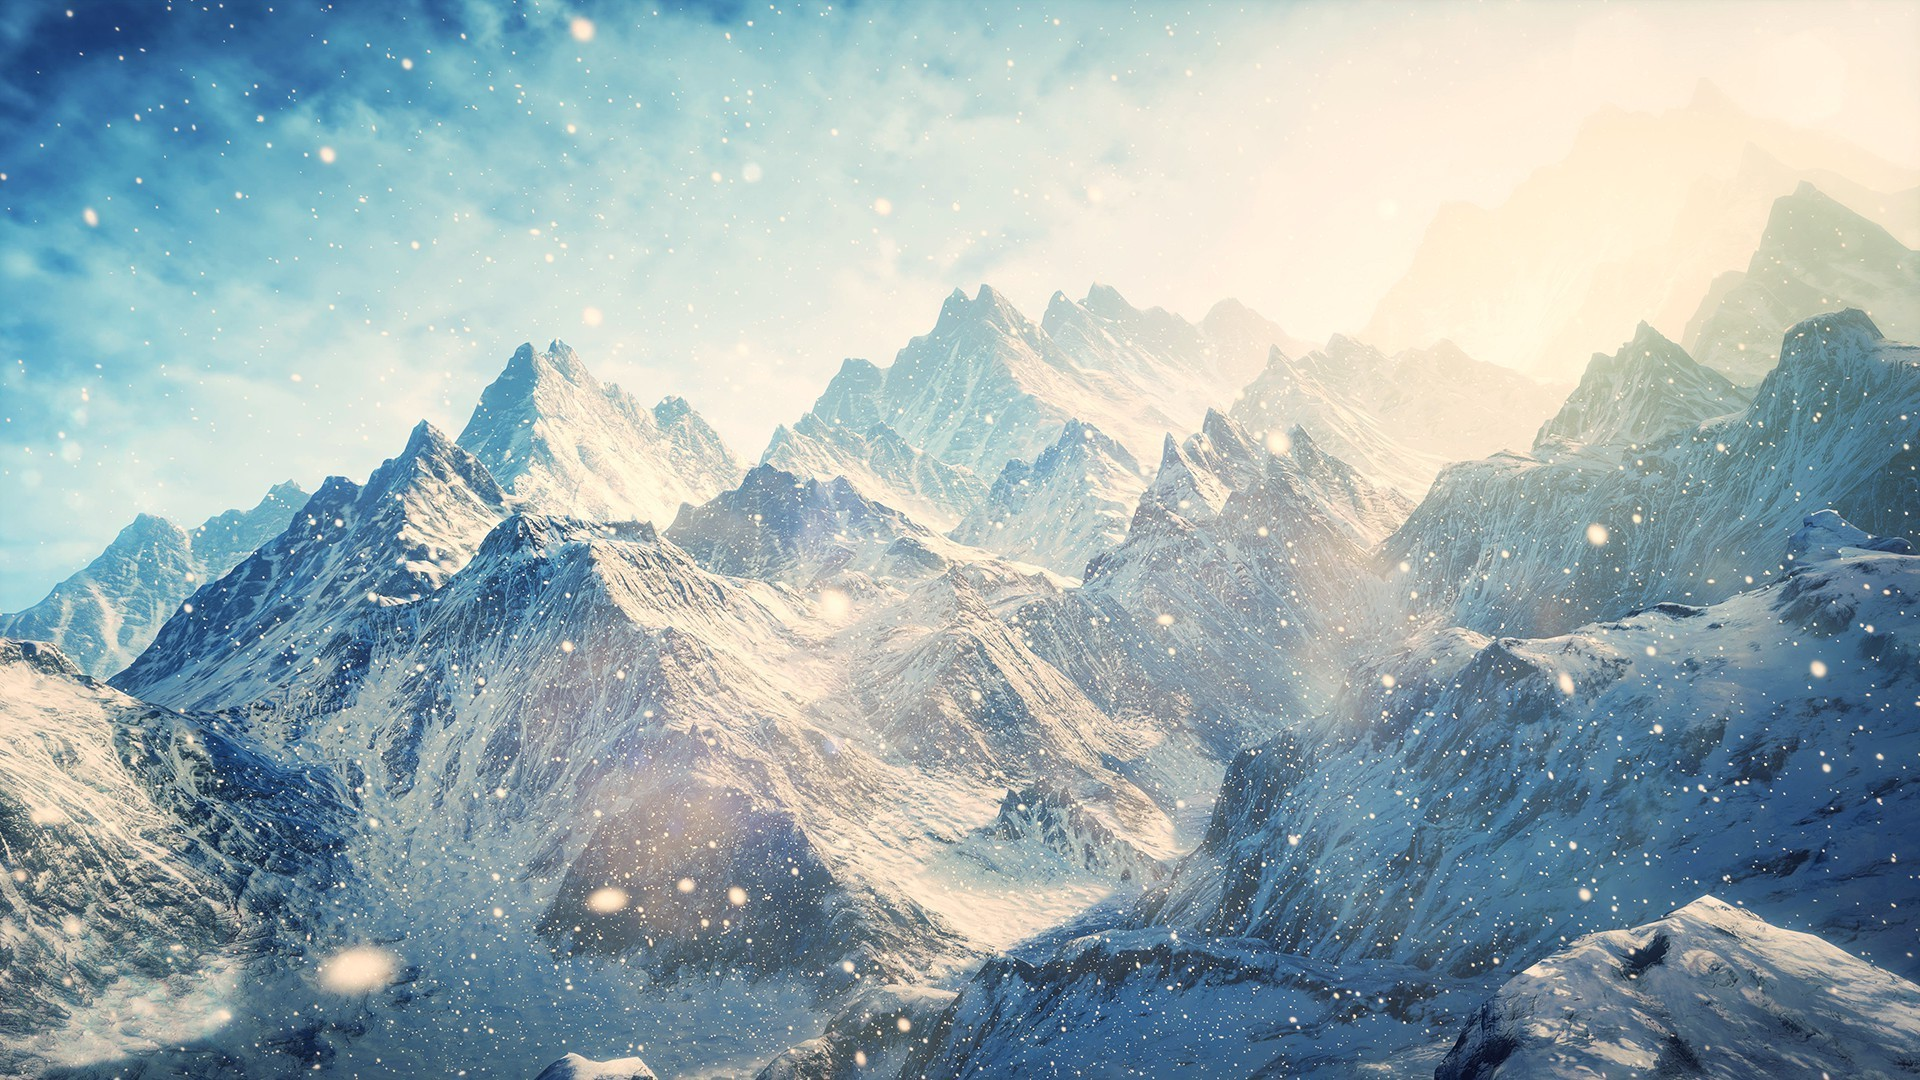 An awesome wallpaper of winter. A landscape wallpaper for your desktop .